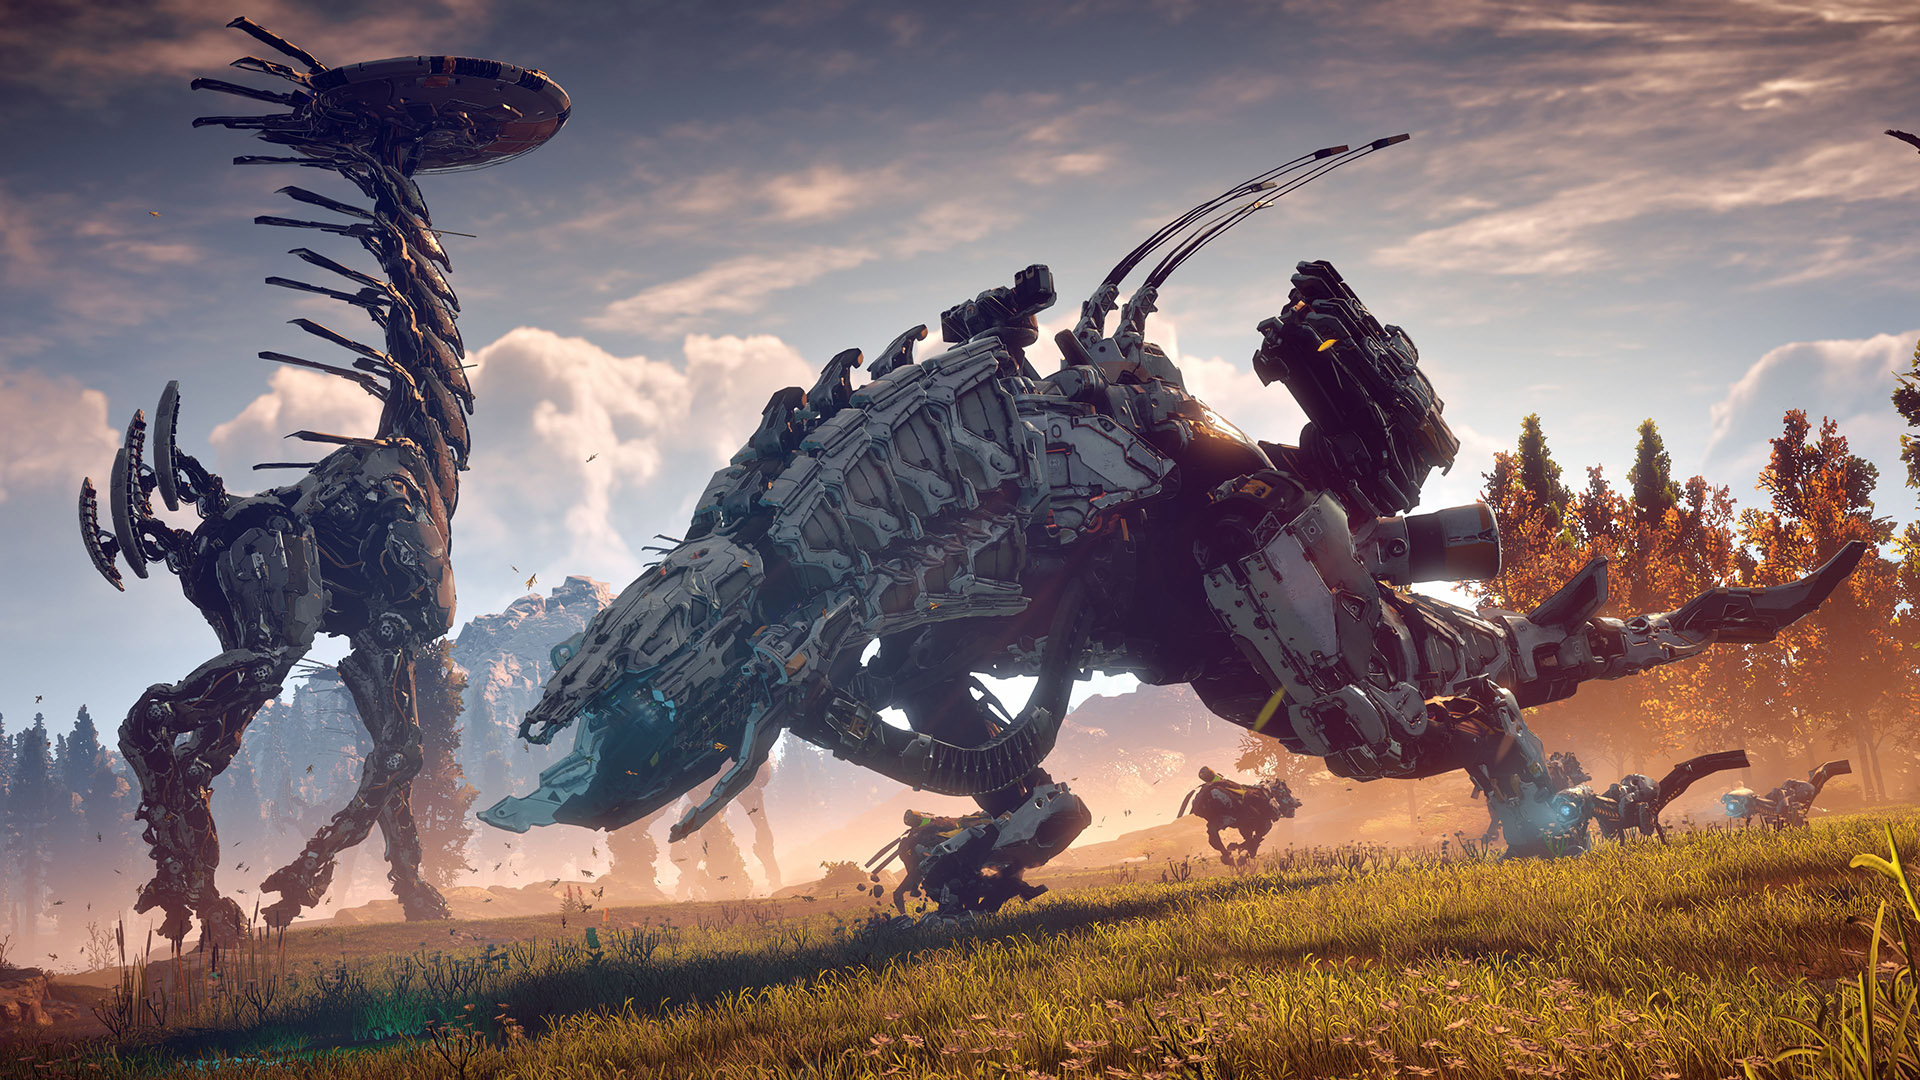 Avis de disparition (topic nécrologique). - Page 16 Horizon-zero-dawn-machines